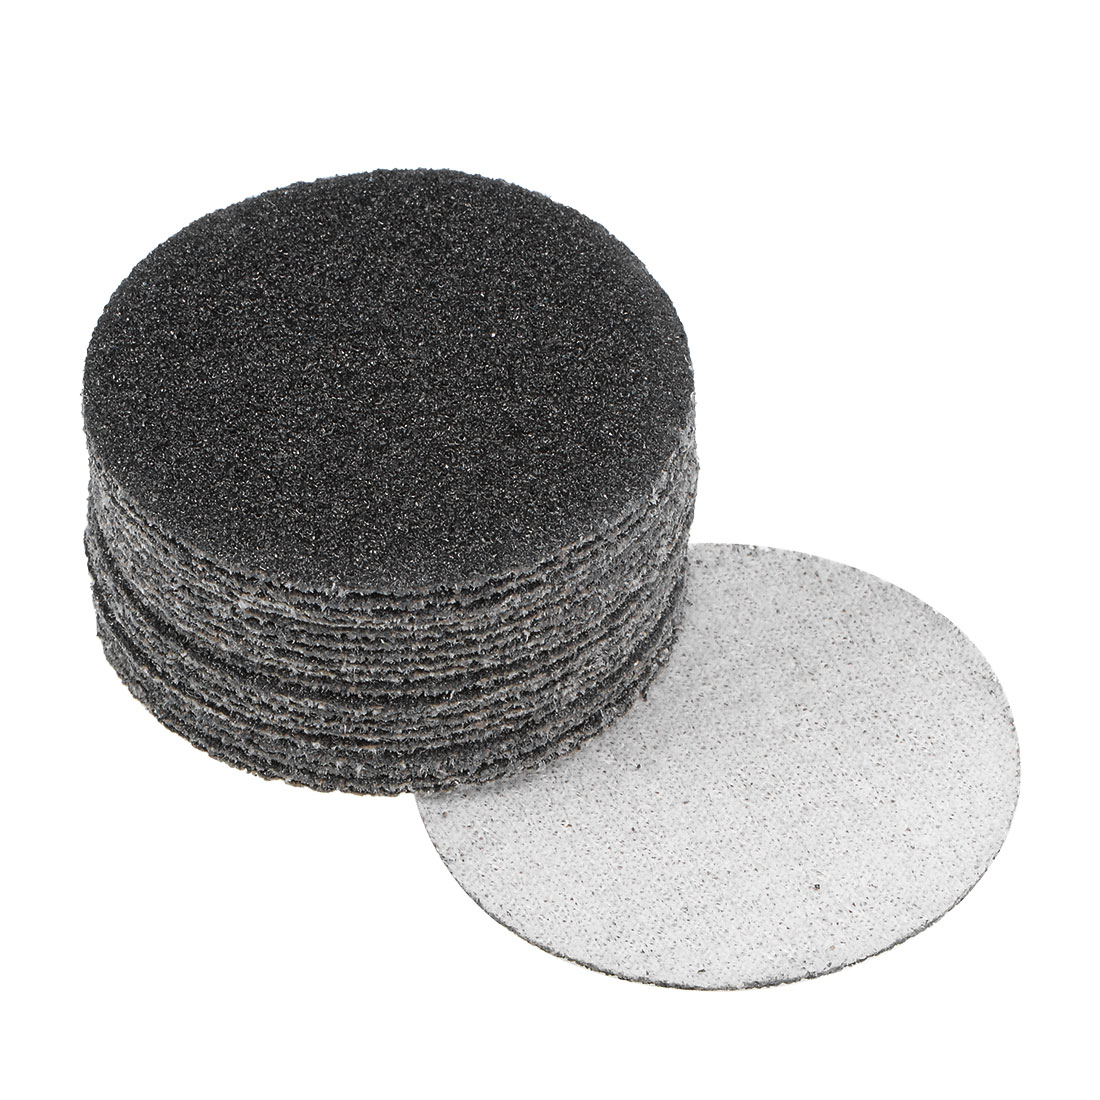 2 inch Wet Dry Discs 60 Grit Hook and Loop Sanding Disc Silicon Carbide 20pcs